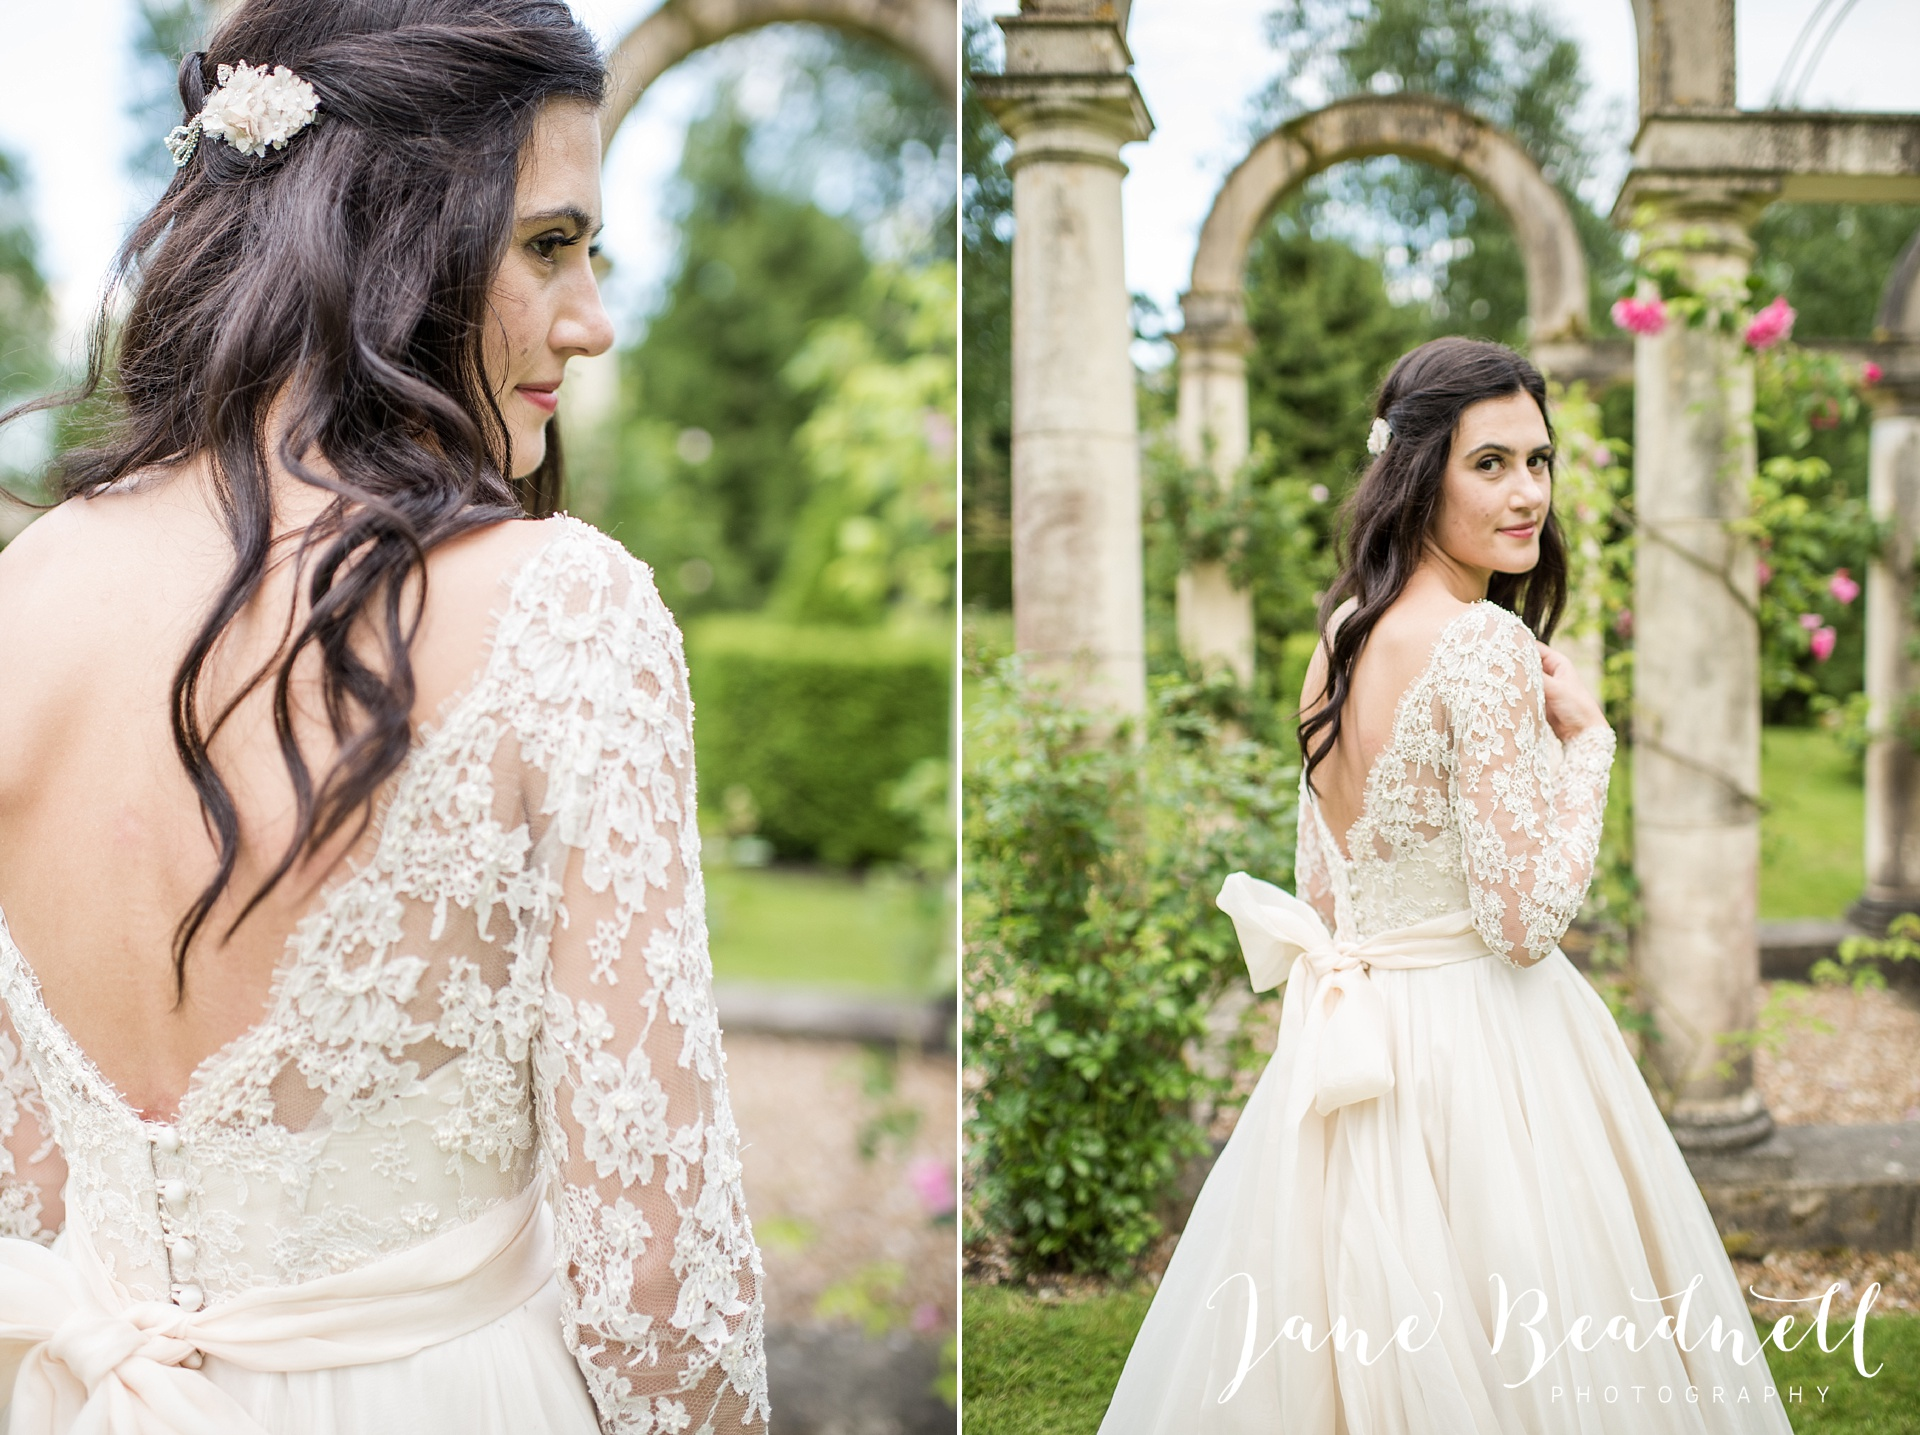 The Orangery Settrington York Wedding Photography Jane Beadnell-_ ...